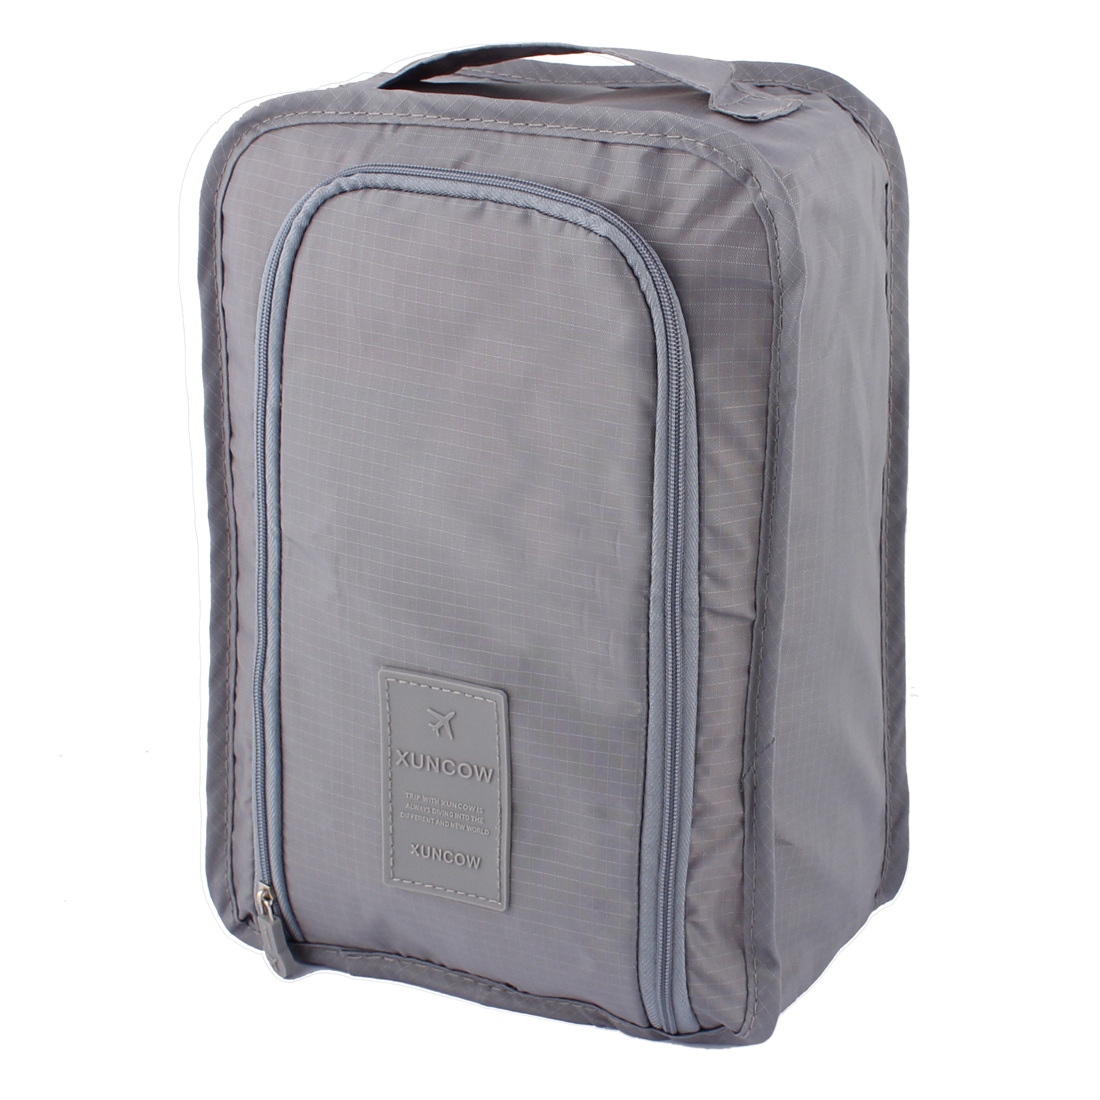 Gray Portable Water Resistant Shoes Storage Folding Pouch Bag Case Organizer Keeper